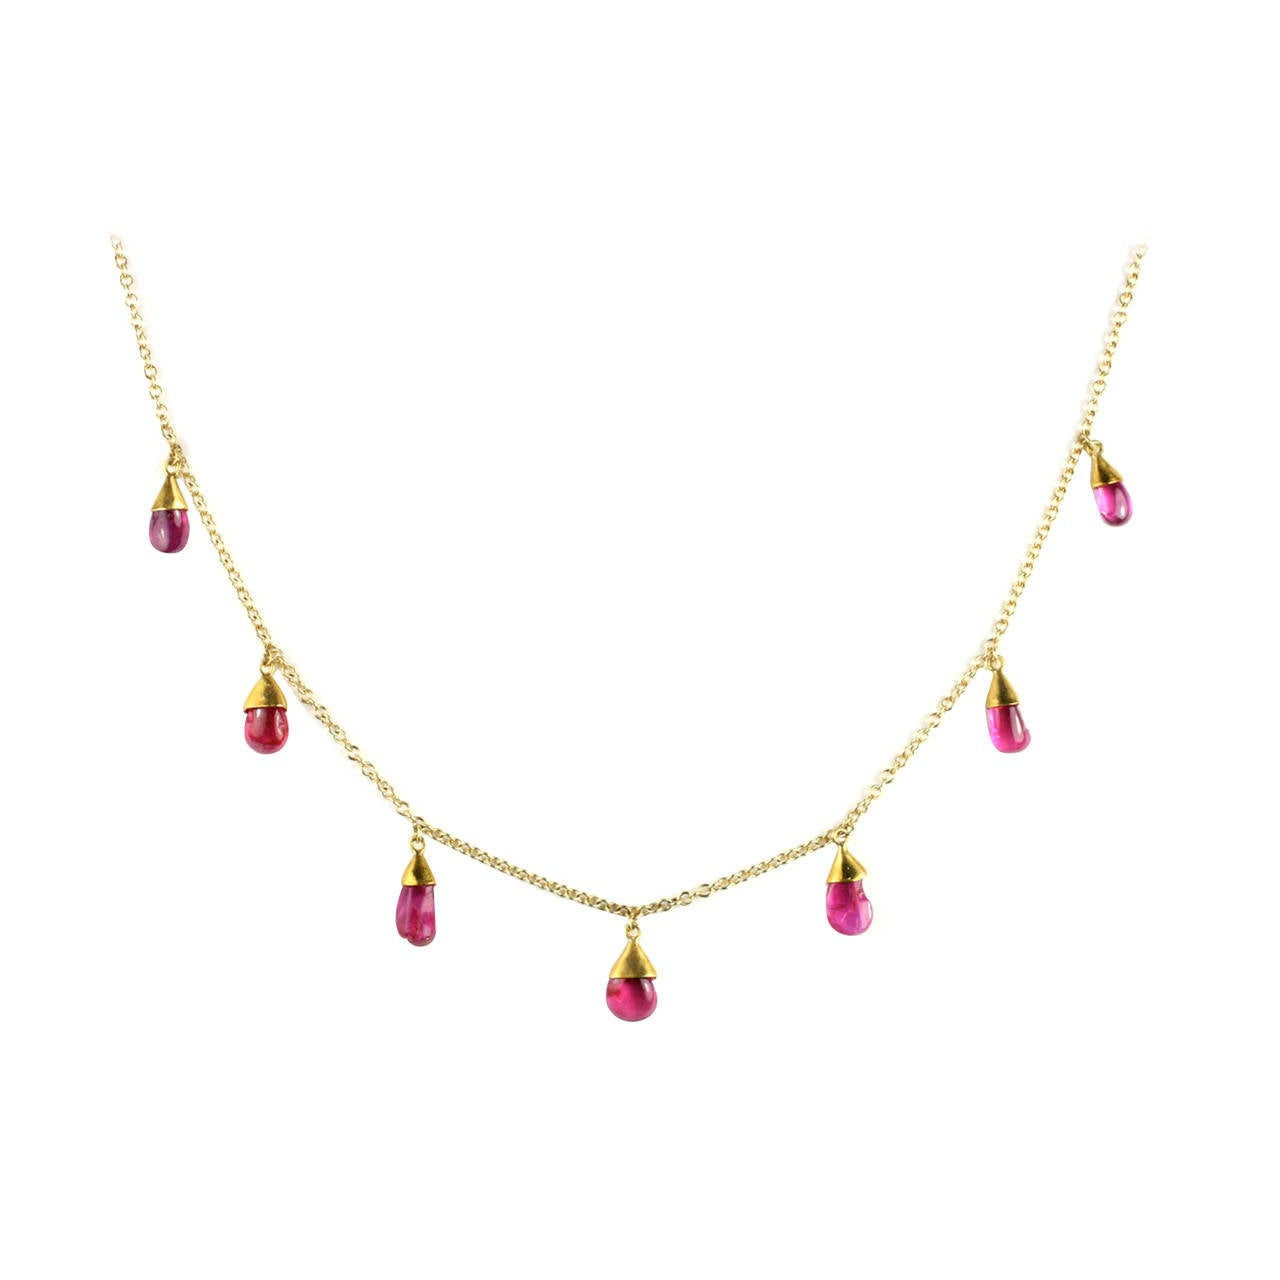 Julius Cohen Gold and Ruby Drop Necklace For Sale